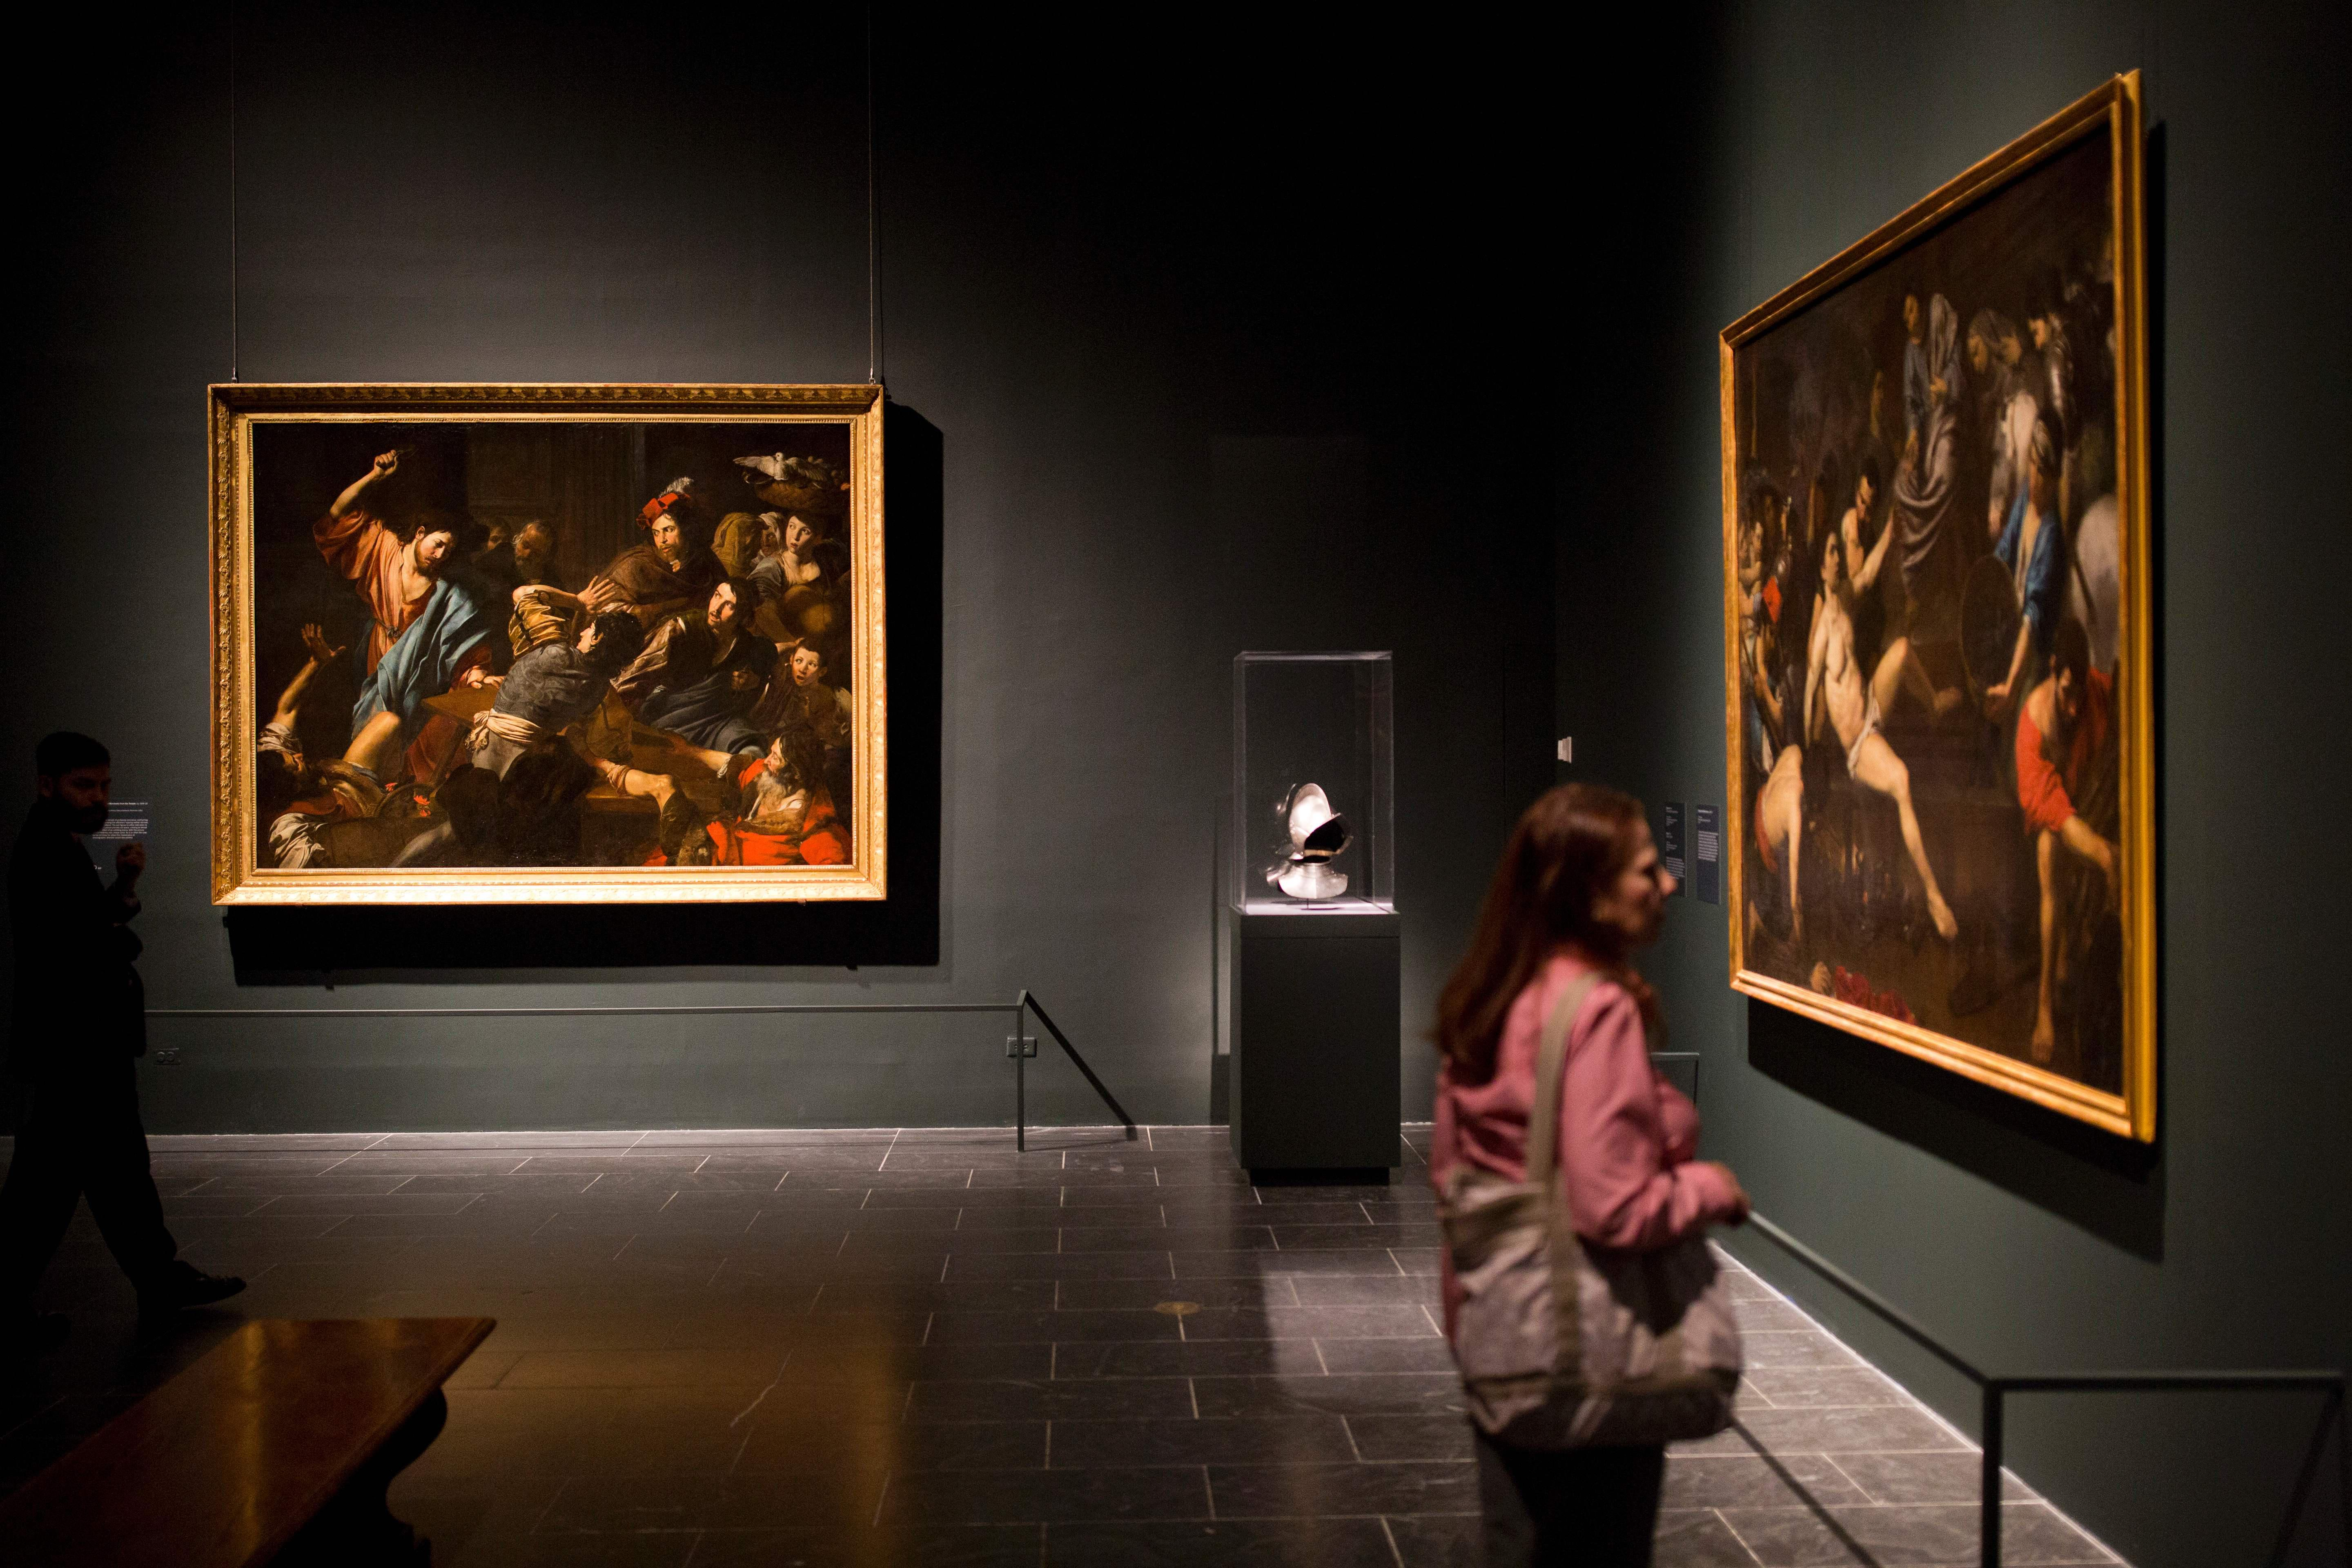 Visitors preview an exhibit of French painter Valentin de Boulogne at the Metropolitan Museum, October 5, 2016, in New York. / AFP / DOMINICK REUTER / RESTRICTED TO EDITORIAL USE - MANDATORY MENTION OF THE ARTIST UPON PUBLICATION - TO ILLUSTRATE THE EVENT AS SPECIFIED IN THE CAPTION        (Photo credit should read DOMINICK REUTER/AFP/Getty Images)